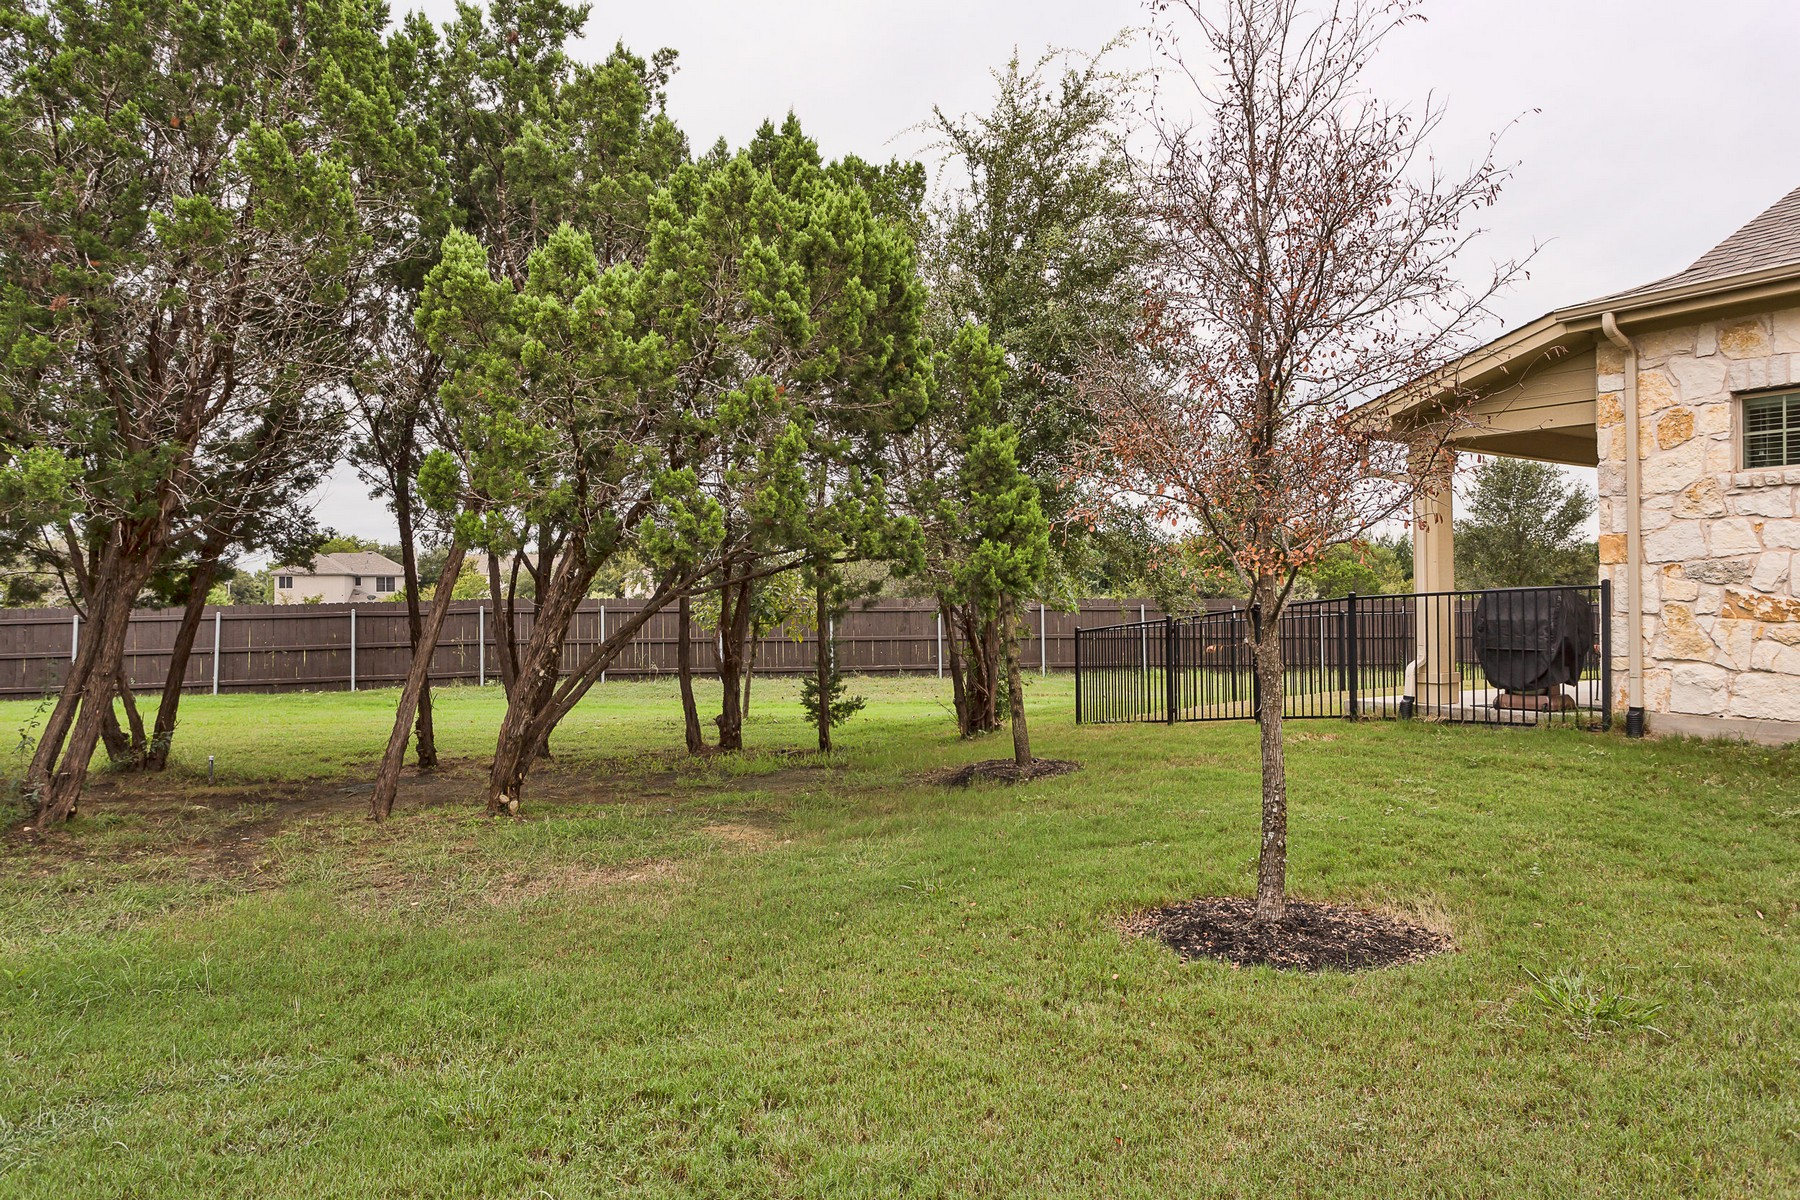 Additional photo for property listing at Immaculate Home in Brodie Heights 3101 Davis Ln 8103 Austin, Texas 78748 United States